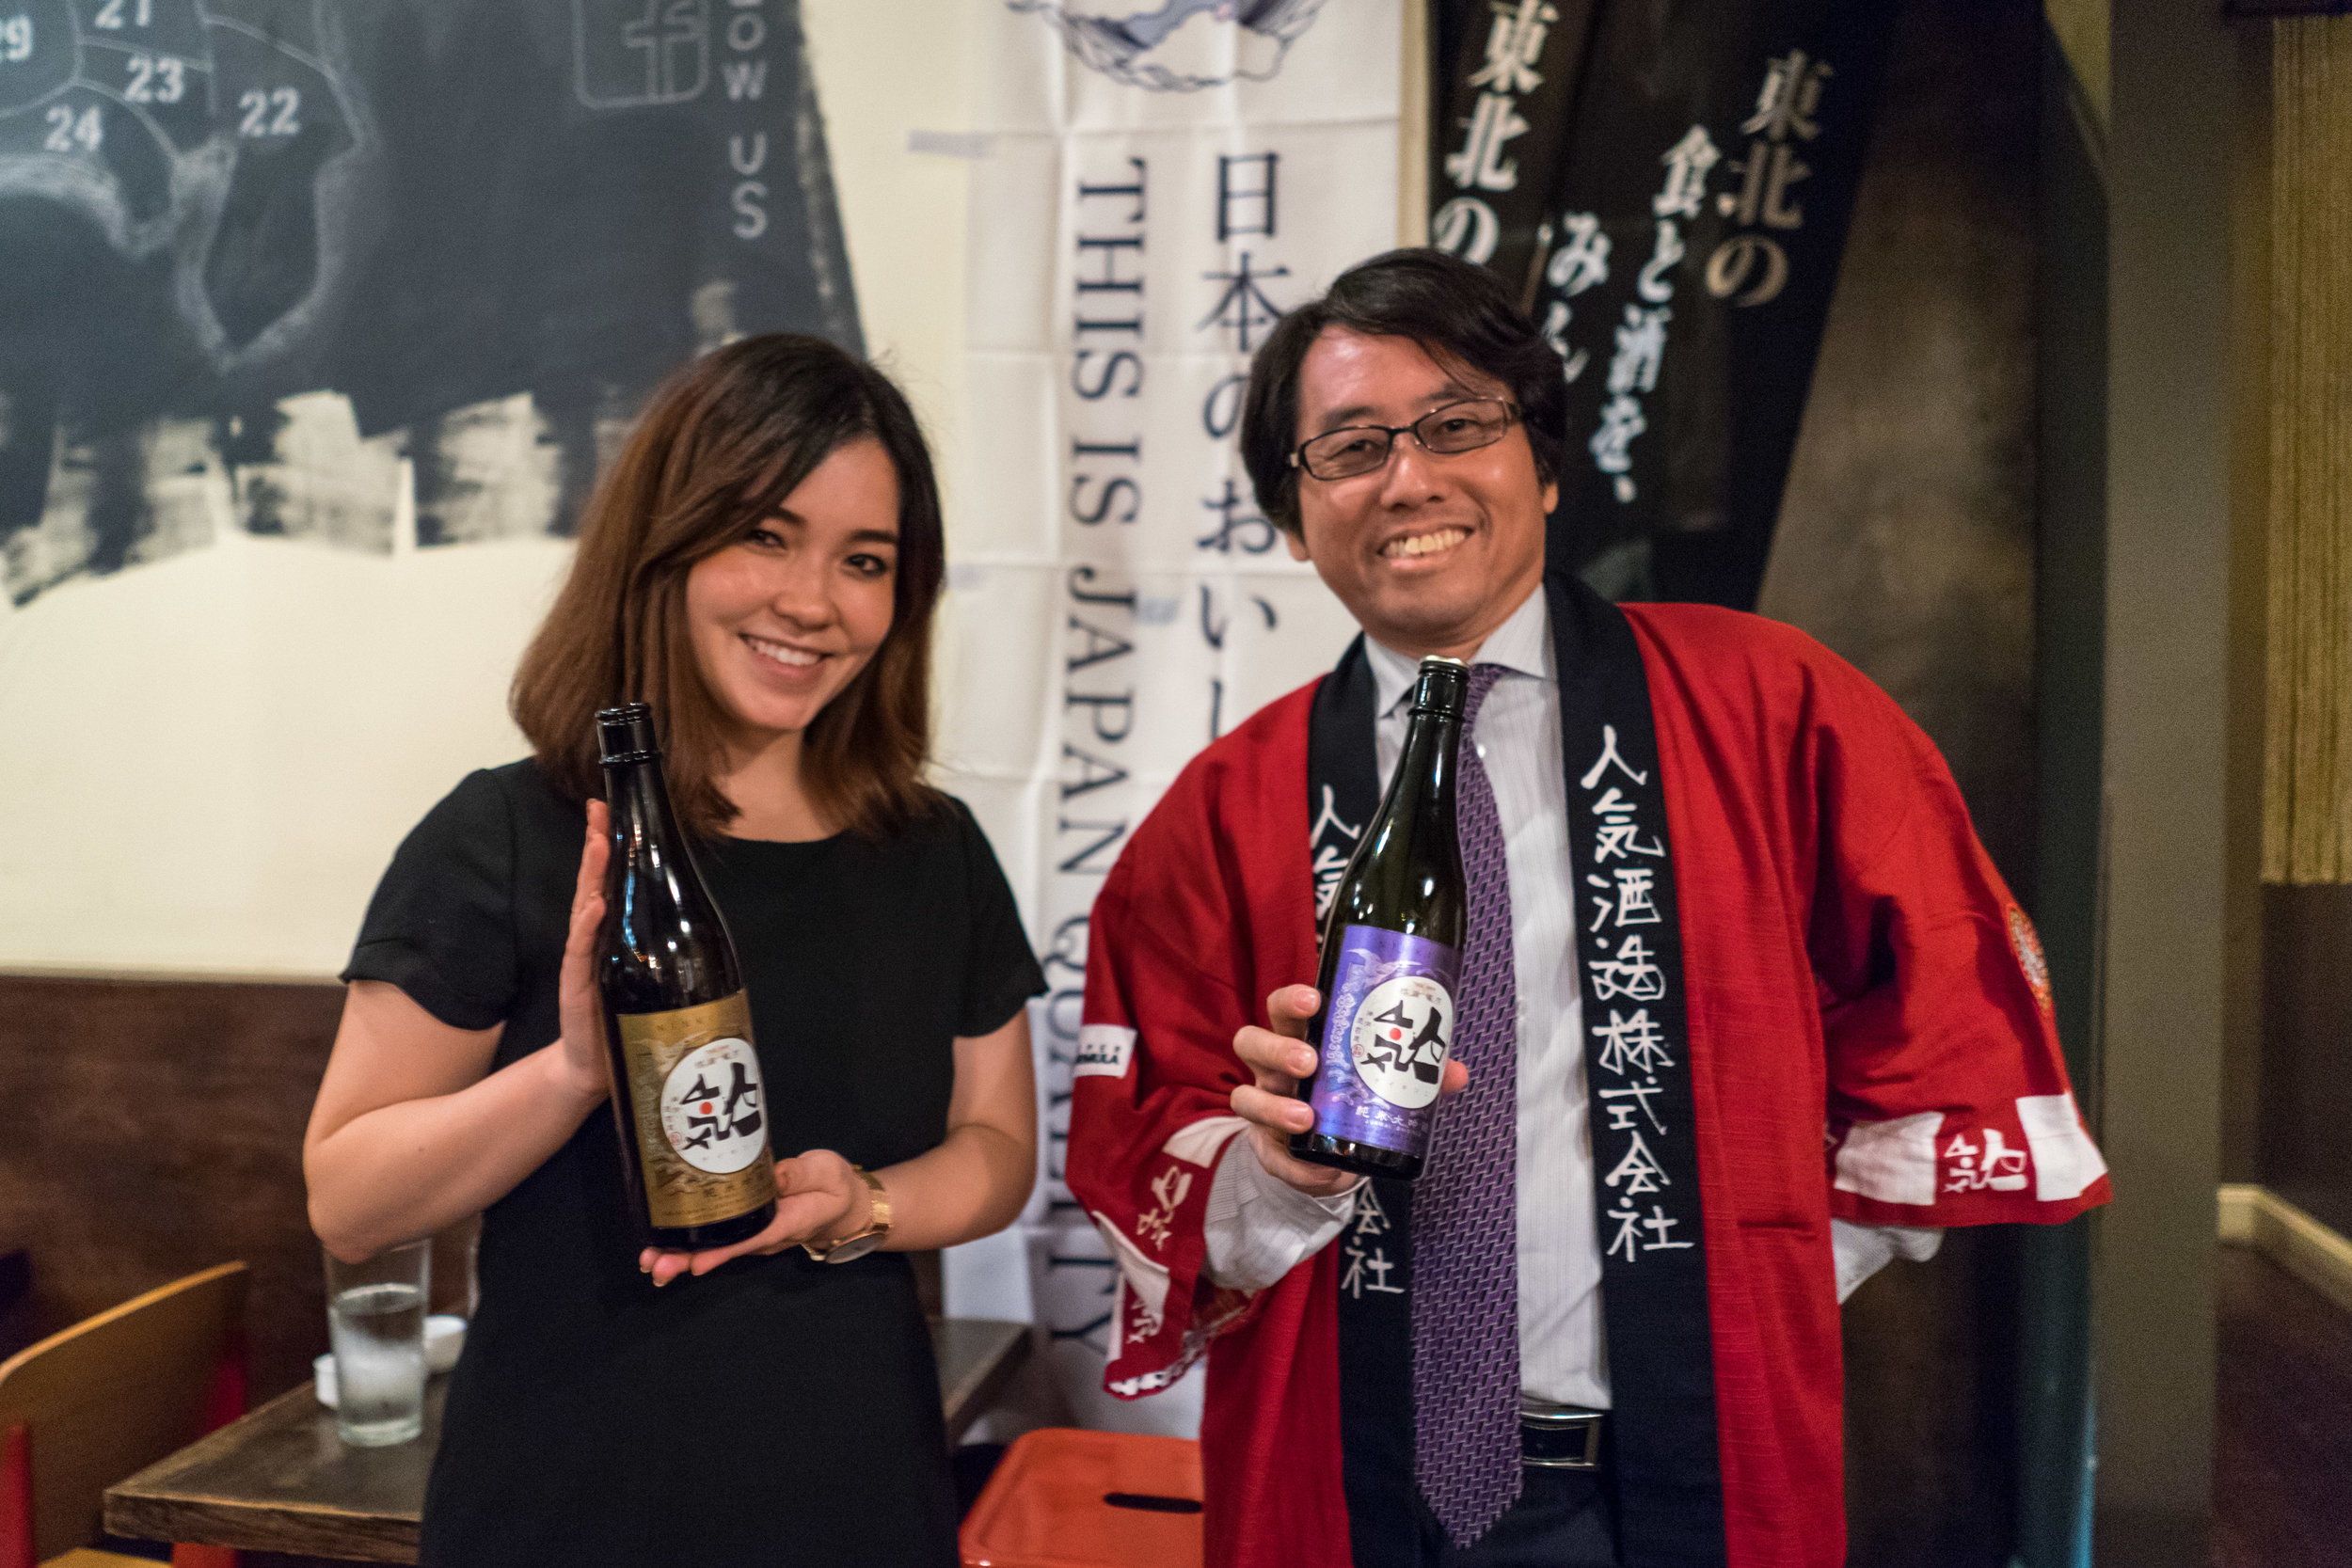 Miss Sake USA, Jessica Joly assisted in presenting the pairings and providing translation for Yusa San